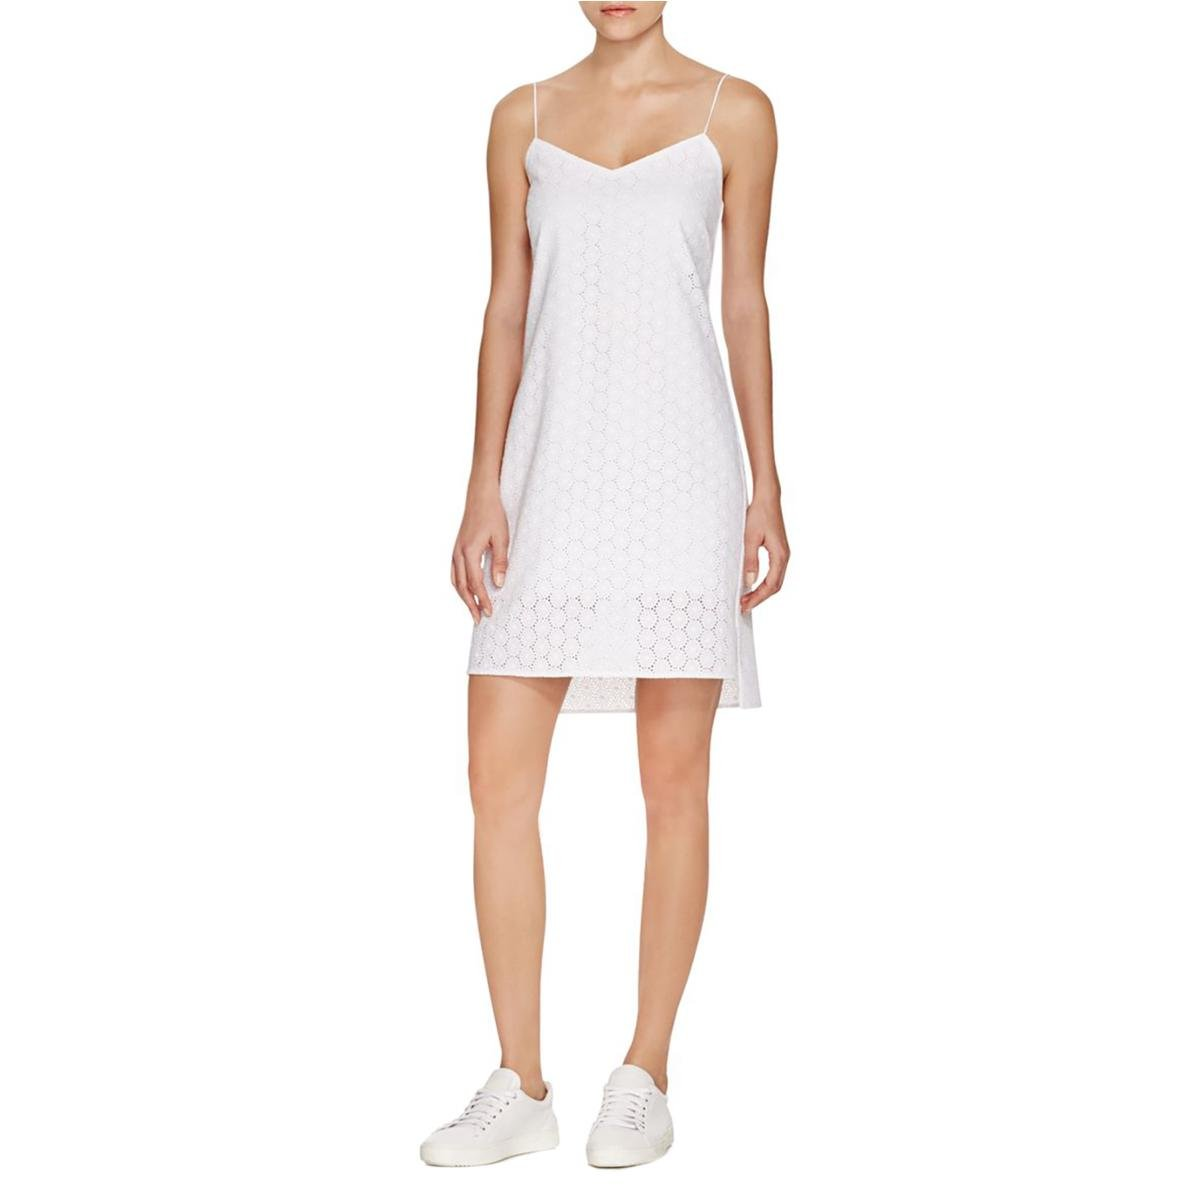 dd6091f2011fc Rag & Bone Jeans Womens Eyelet Hi-Low Sundress White 6 at Amazon Women's  Clothing store: